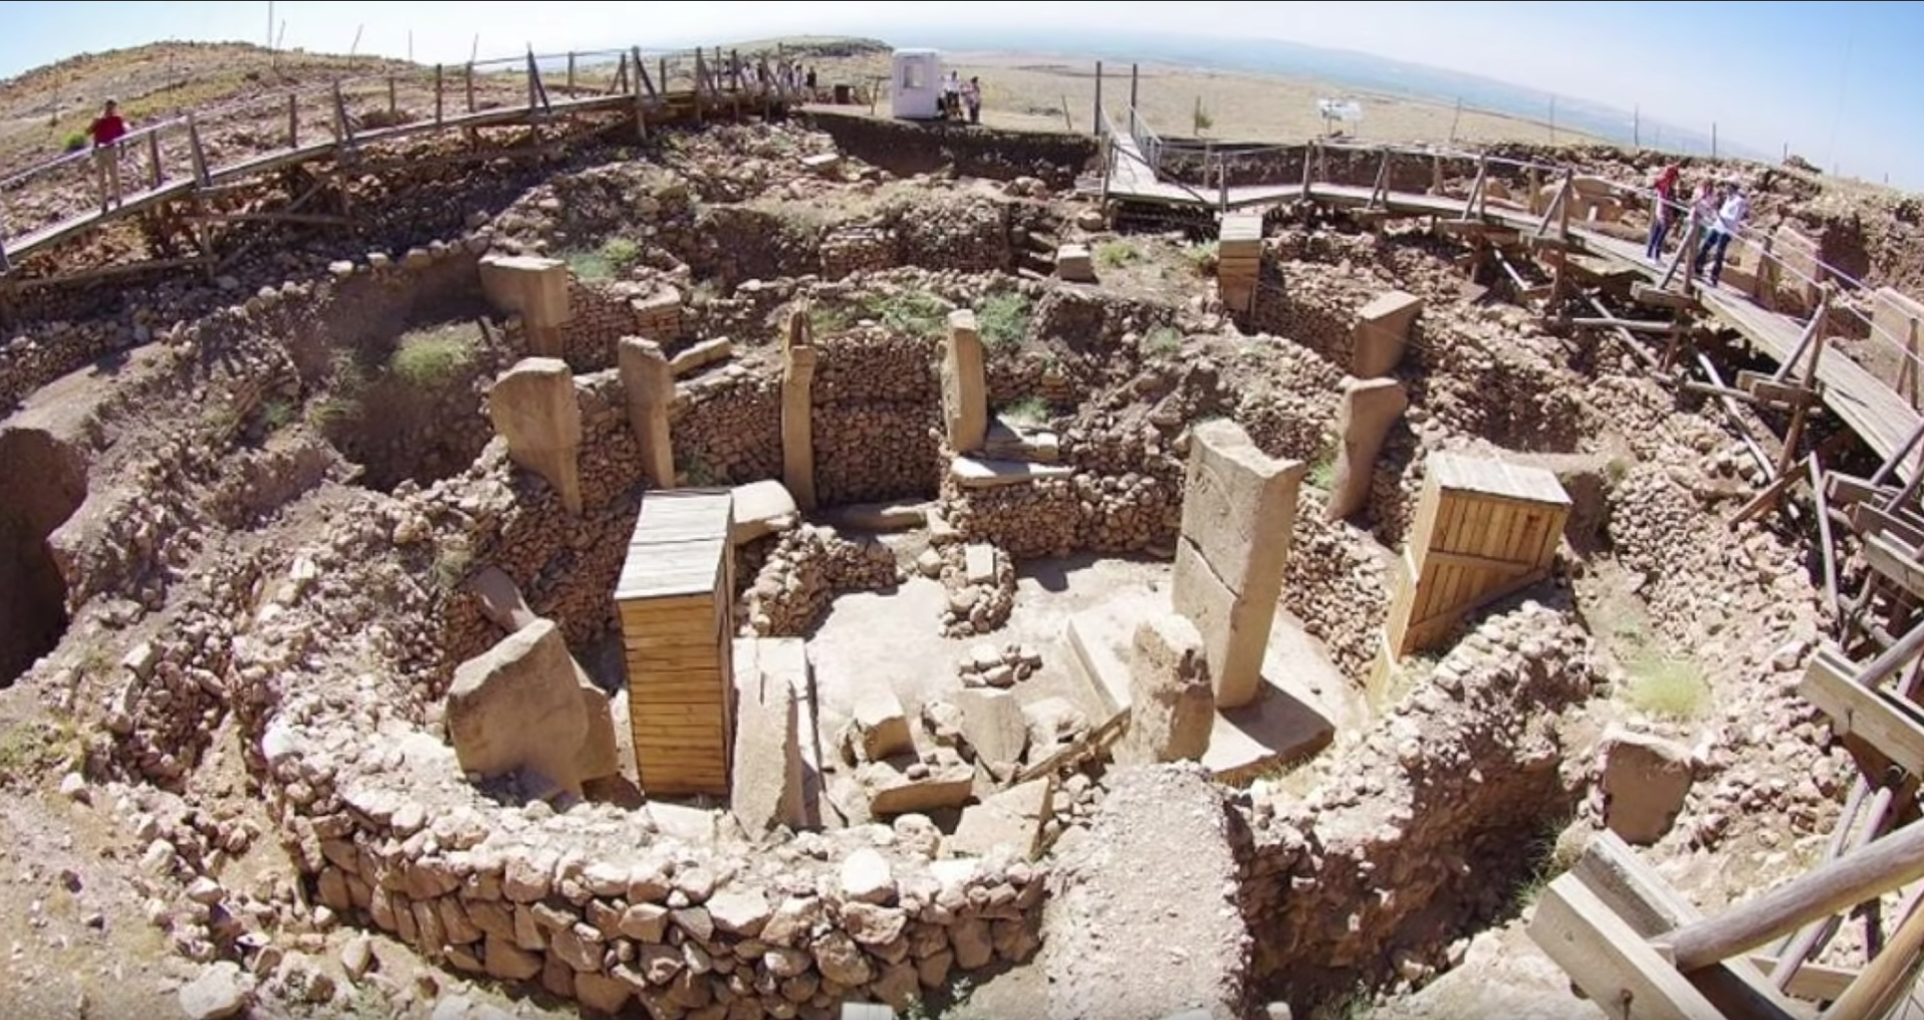 Gobekli Tepe Zodiac Hypothesis: Is it an Ancient Star Map ... on middle east map, stonehenge map, baalbek map, garden of eden map, rome map, istanbul map, cappadocia map, easter island map, ur map, fertile crescent map, babylon map, troy map, night sky map, turkey map, samaria map, catalhoyuk map, teotihuacan map, angkor wat map, ancient civilizations map, puma punku map,